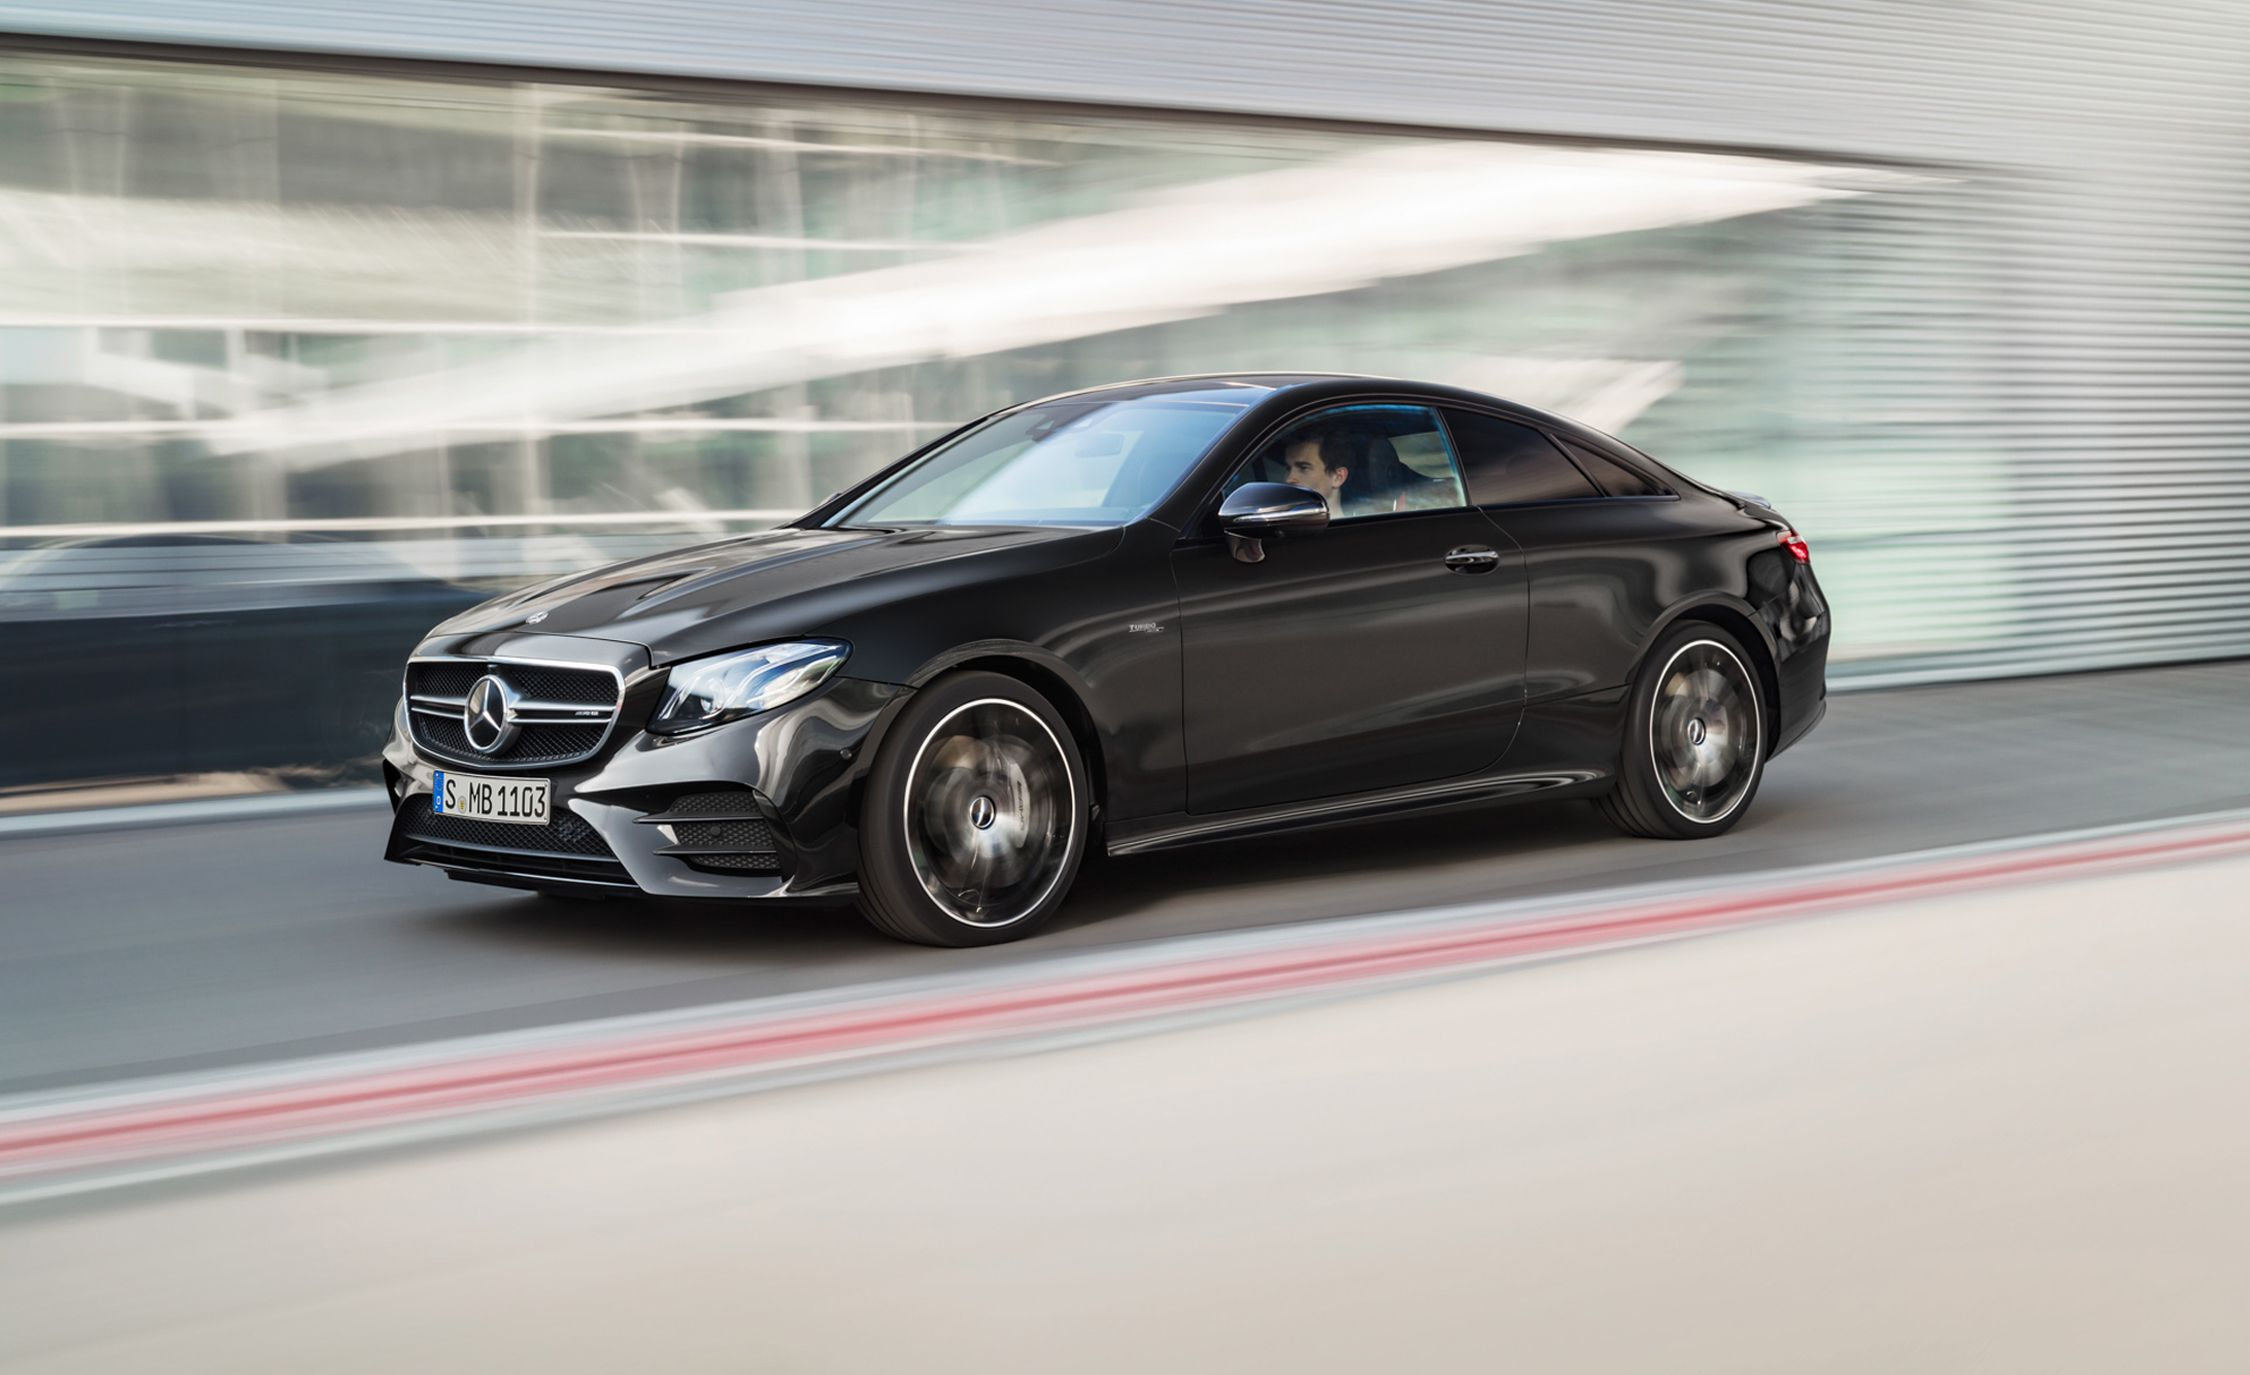 2019 Mercedes Amg E53 Reviews Mercedes Amg E53 Price Photos And